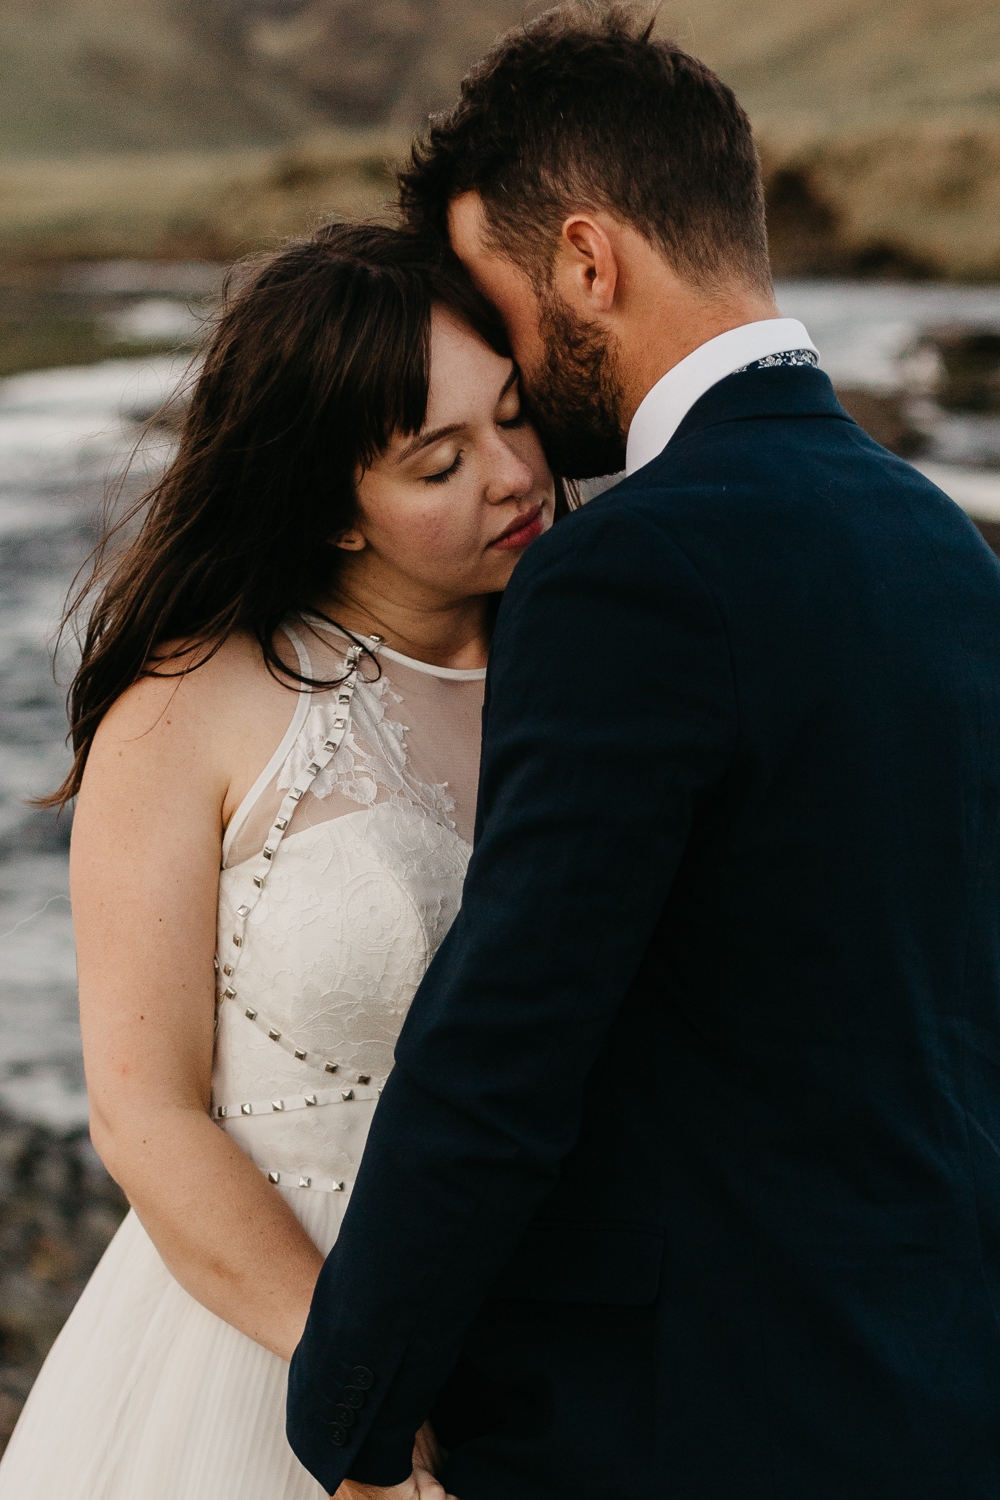 anna szczekutowicz iceland wedding photogapher elopement photographer-137.jpg